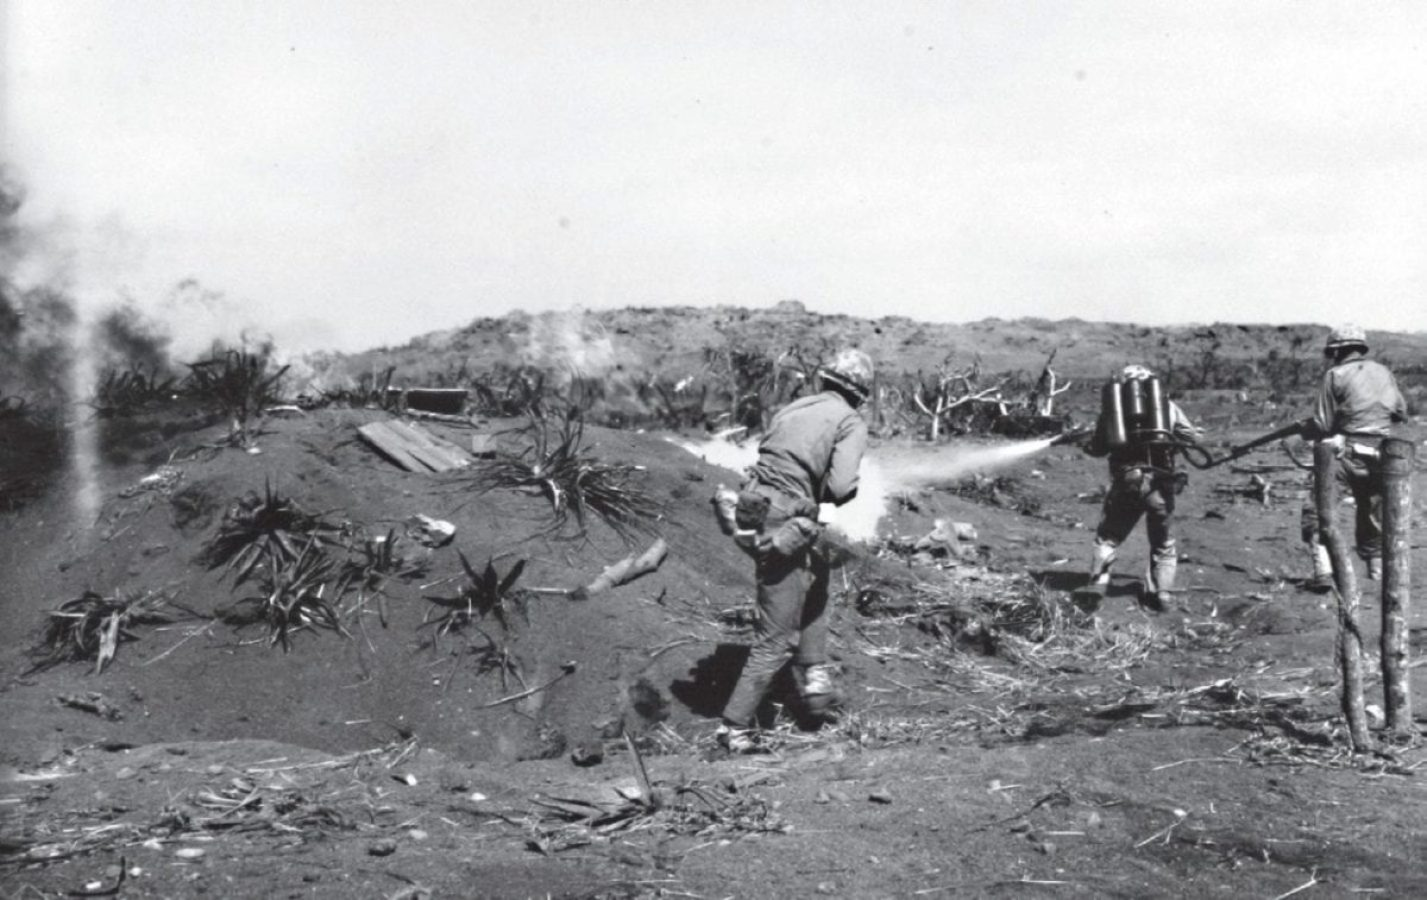 A Marine flamethrower team silences an enemy dugout on Iwo Jima. While two riflemen cover the entrance, the flamethrower showers the position with liquid flame. U.S. MARINE CORPS HISTORICAL CENTER